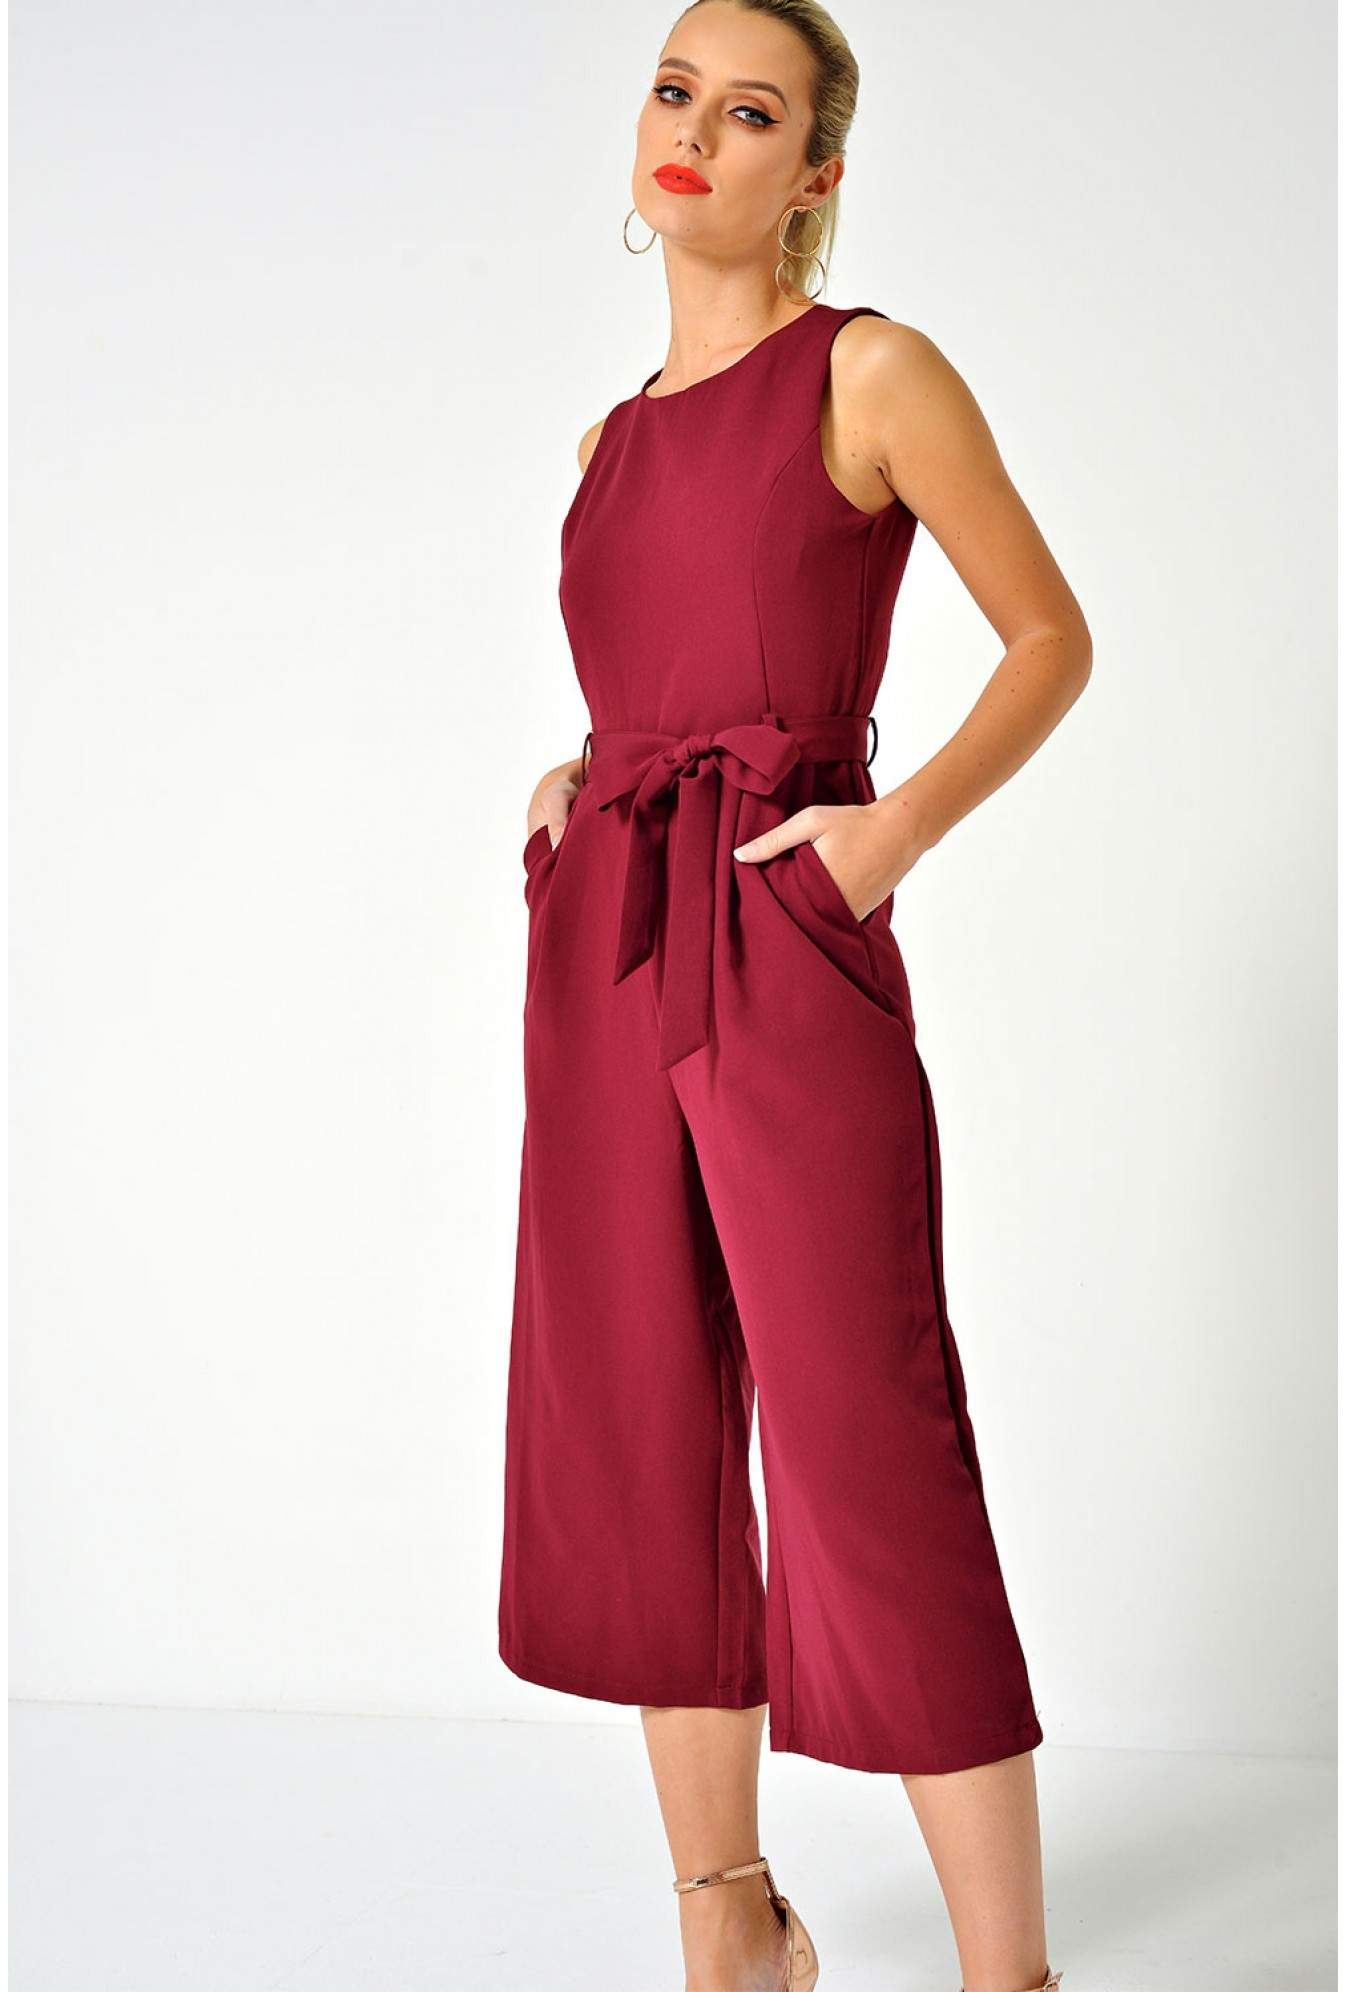 757c317c5bd6 More Views. Layla Longline Culotte Jumpsuit in Wine. Marc Angelo